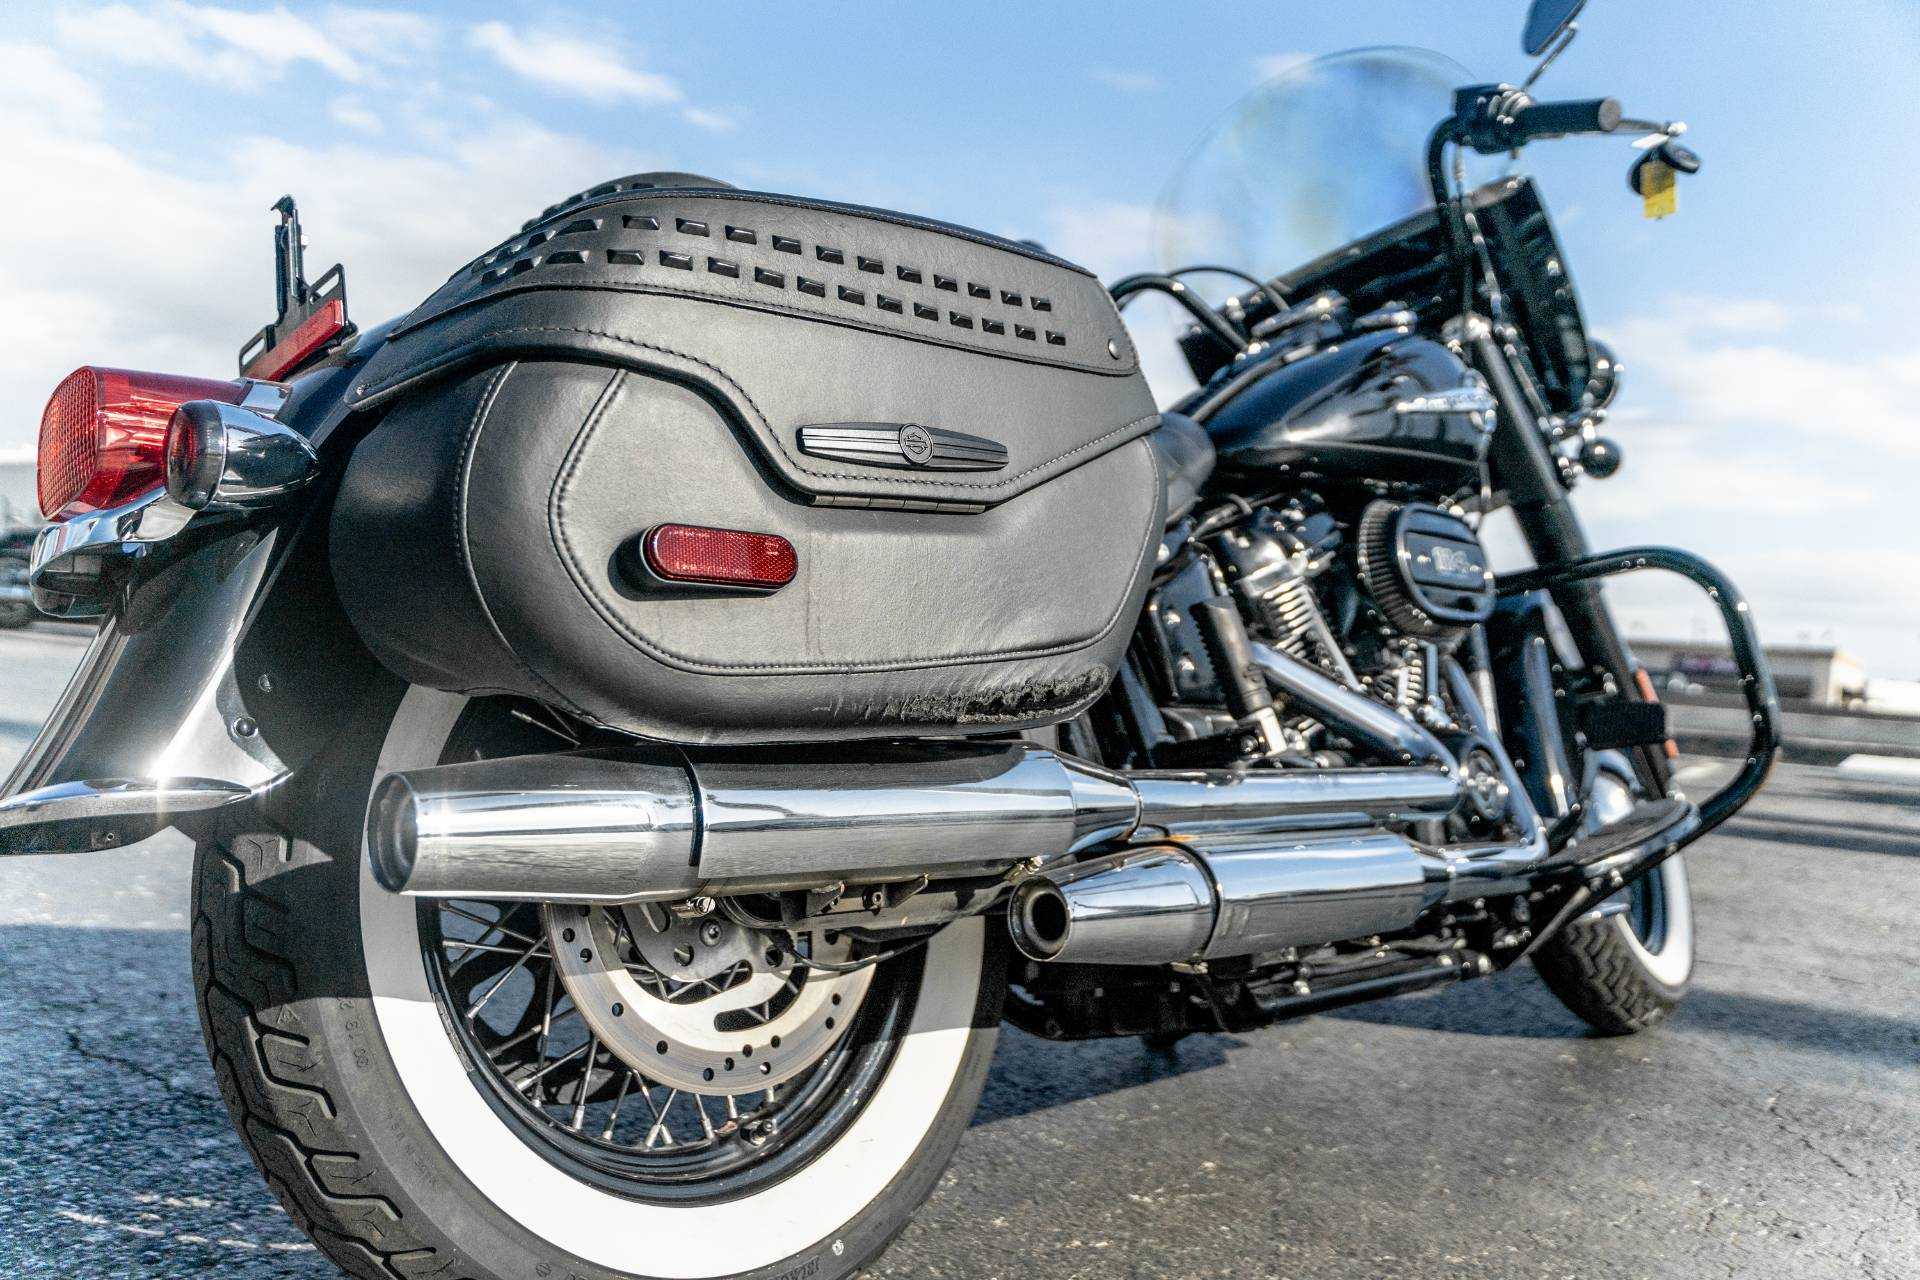 2019 Harley-Davidson Heritage Classic 114 in Houston, Texas - Photo 10